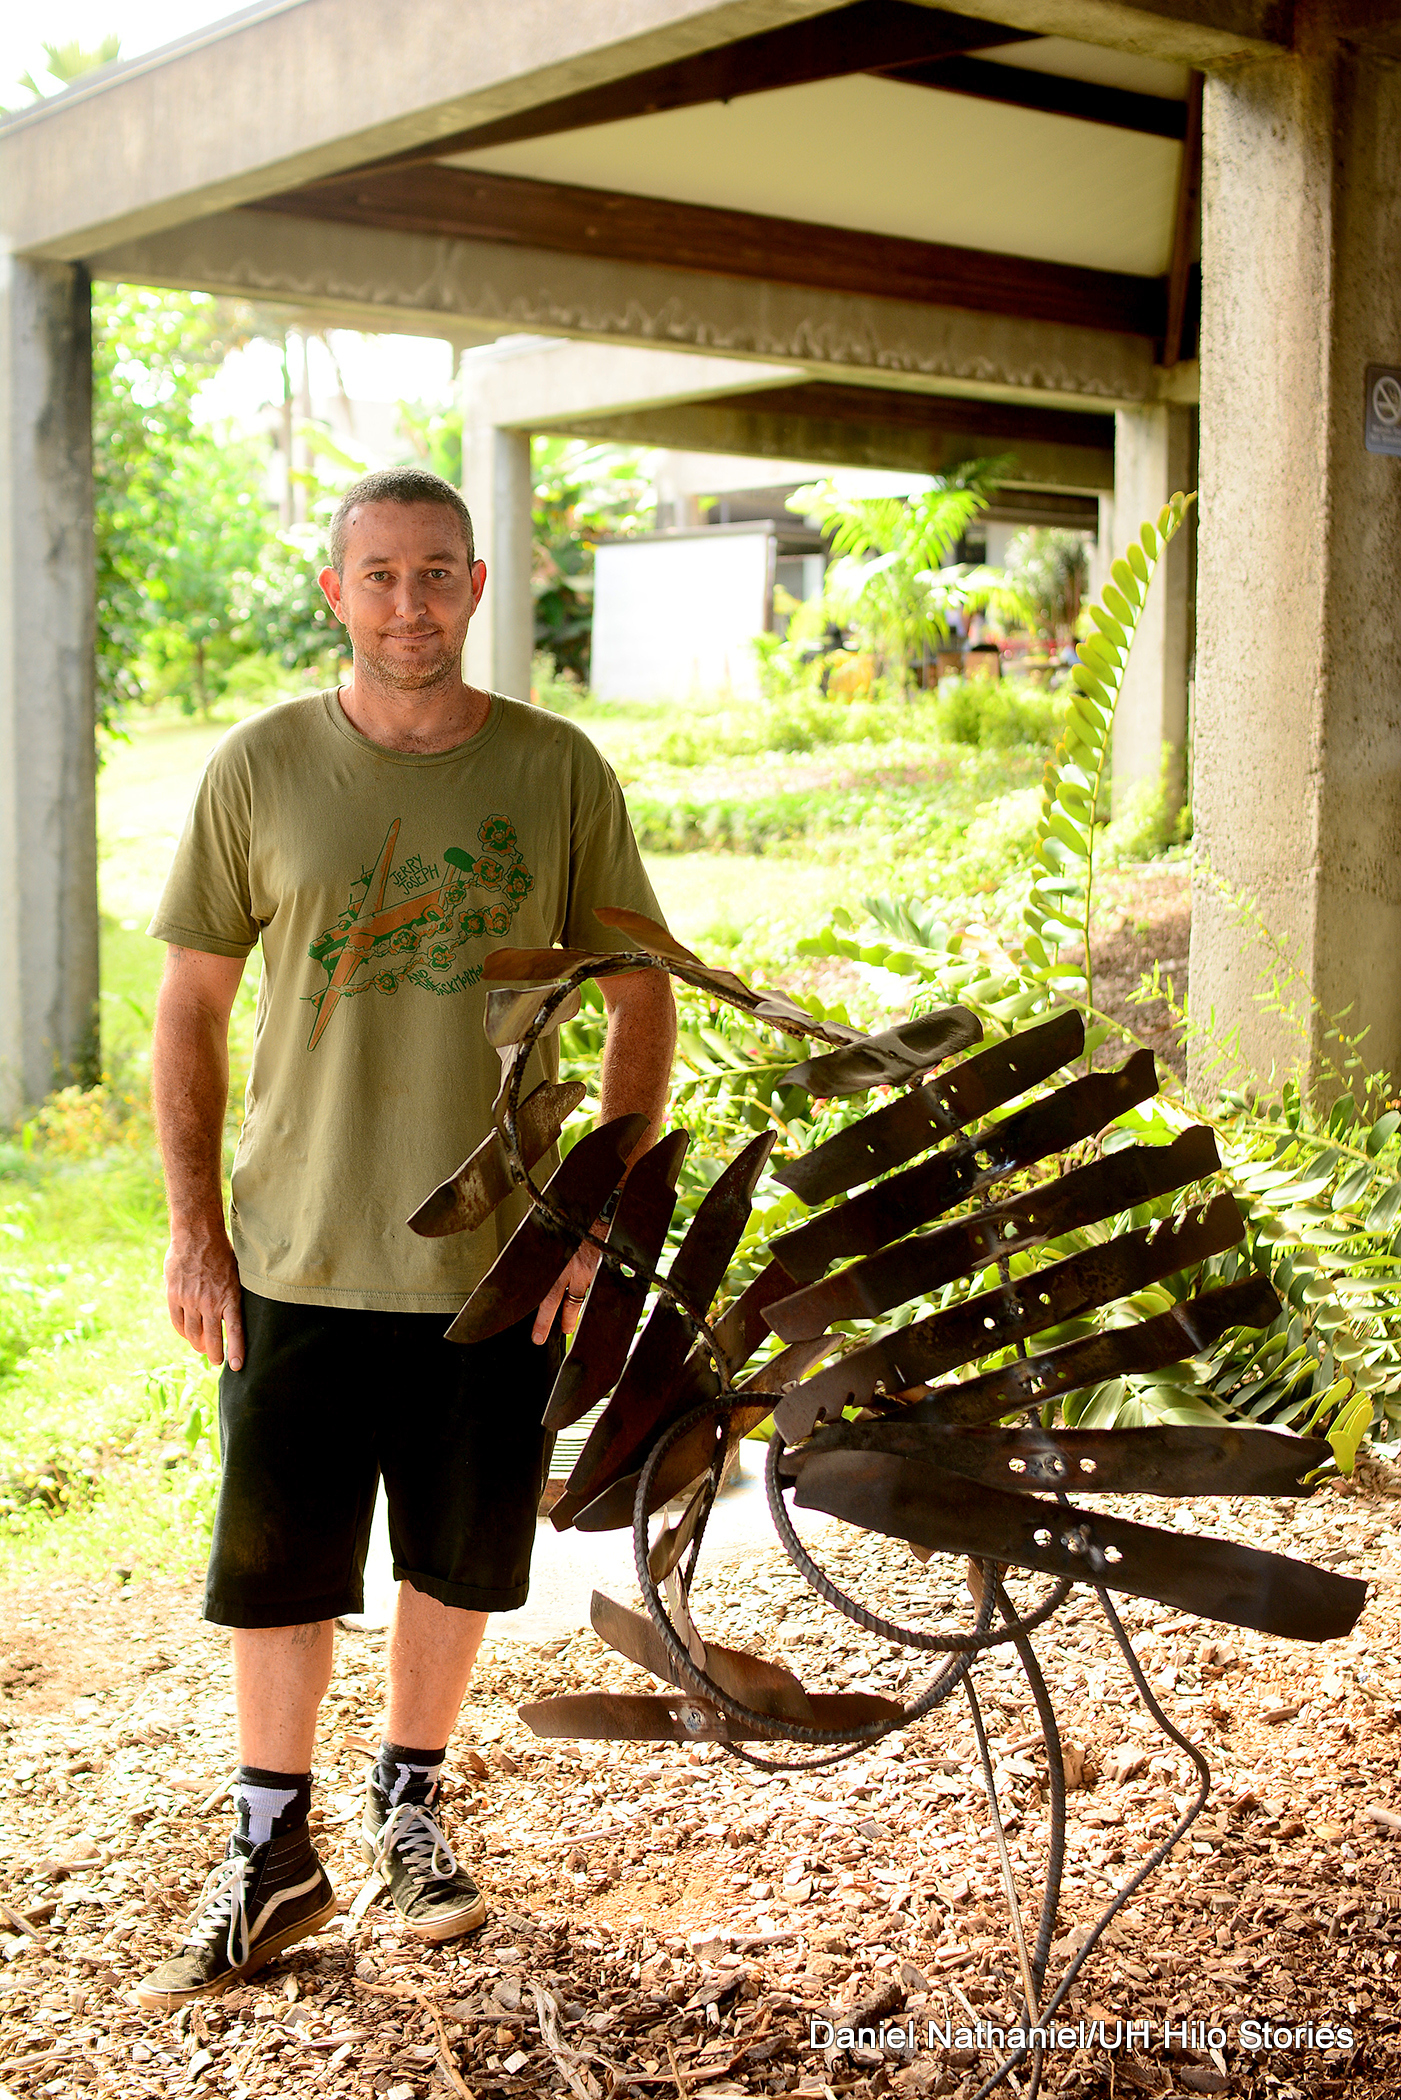 Benjamin Krome stands next to his sculpture made with about a dozen large metal blades attached in a lose spiral to a long, bent piece of rebar.